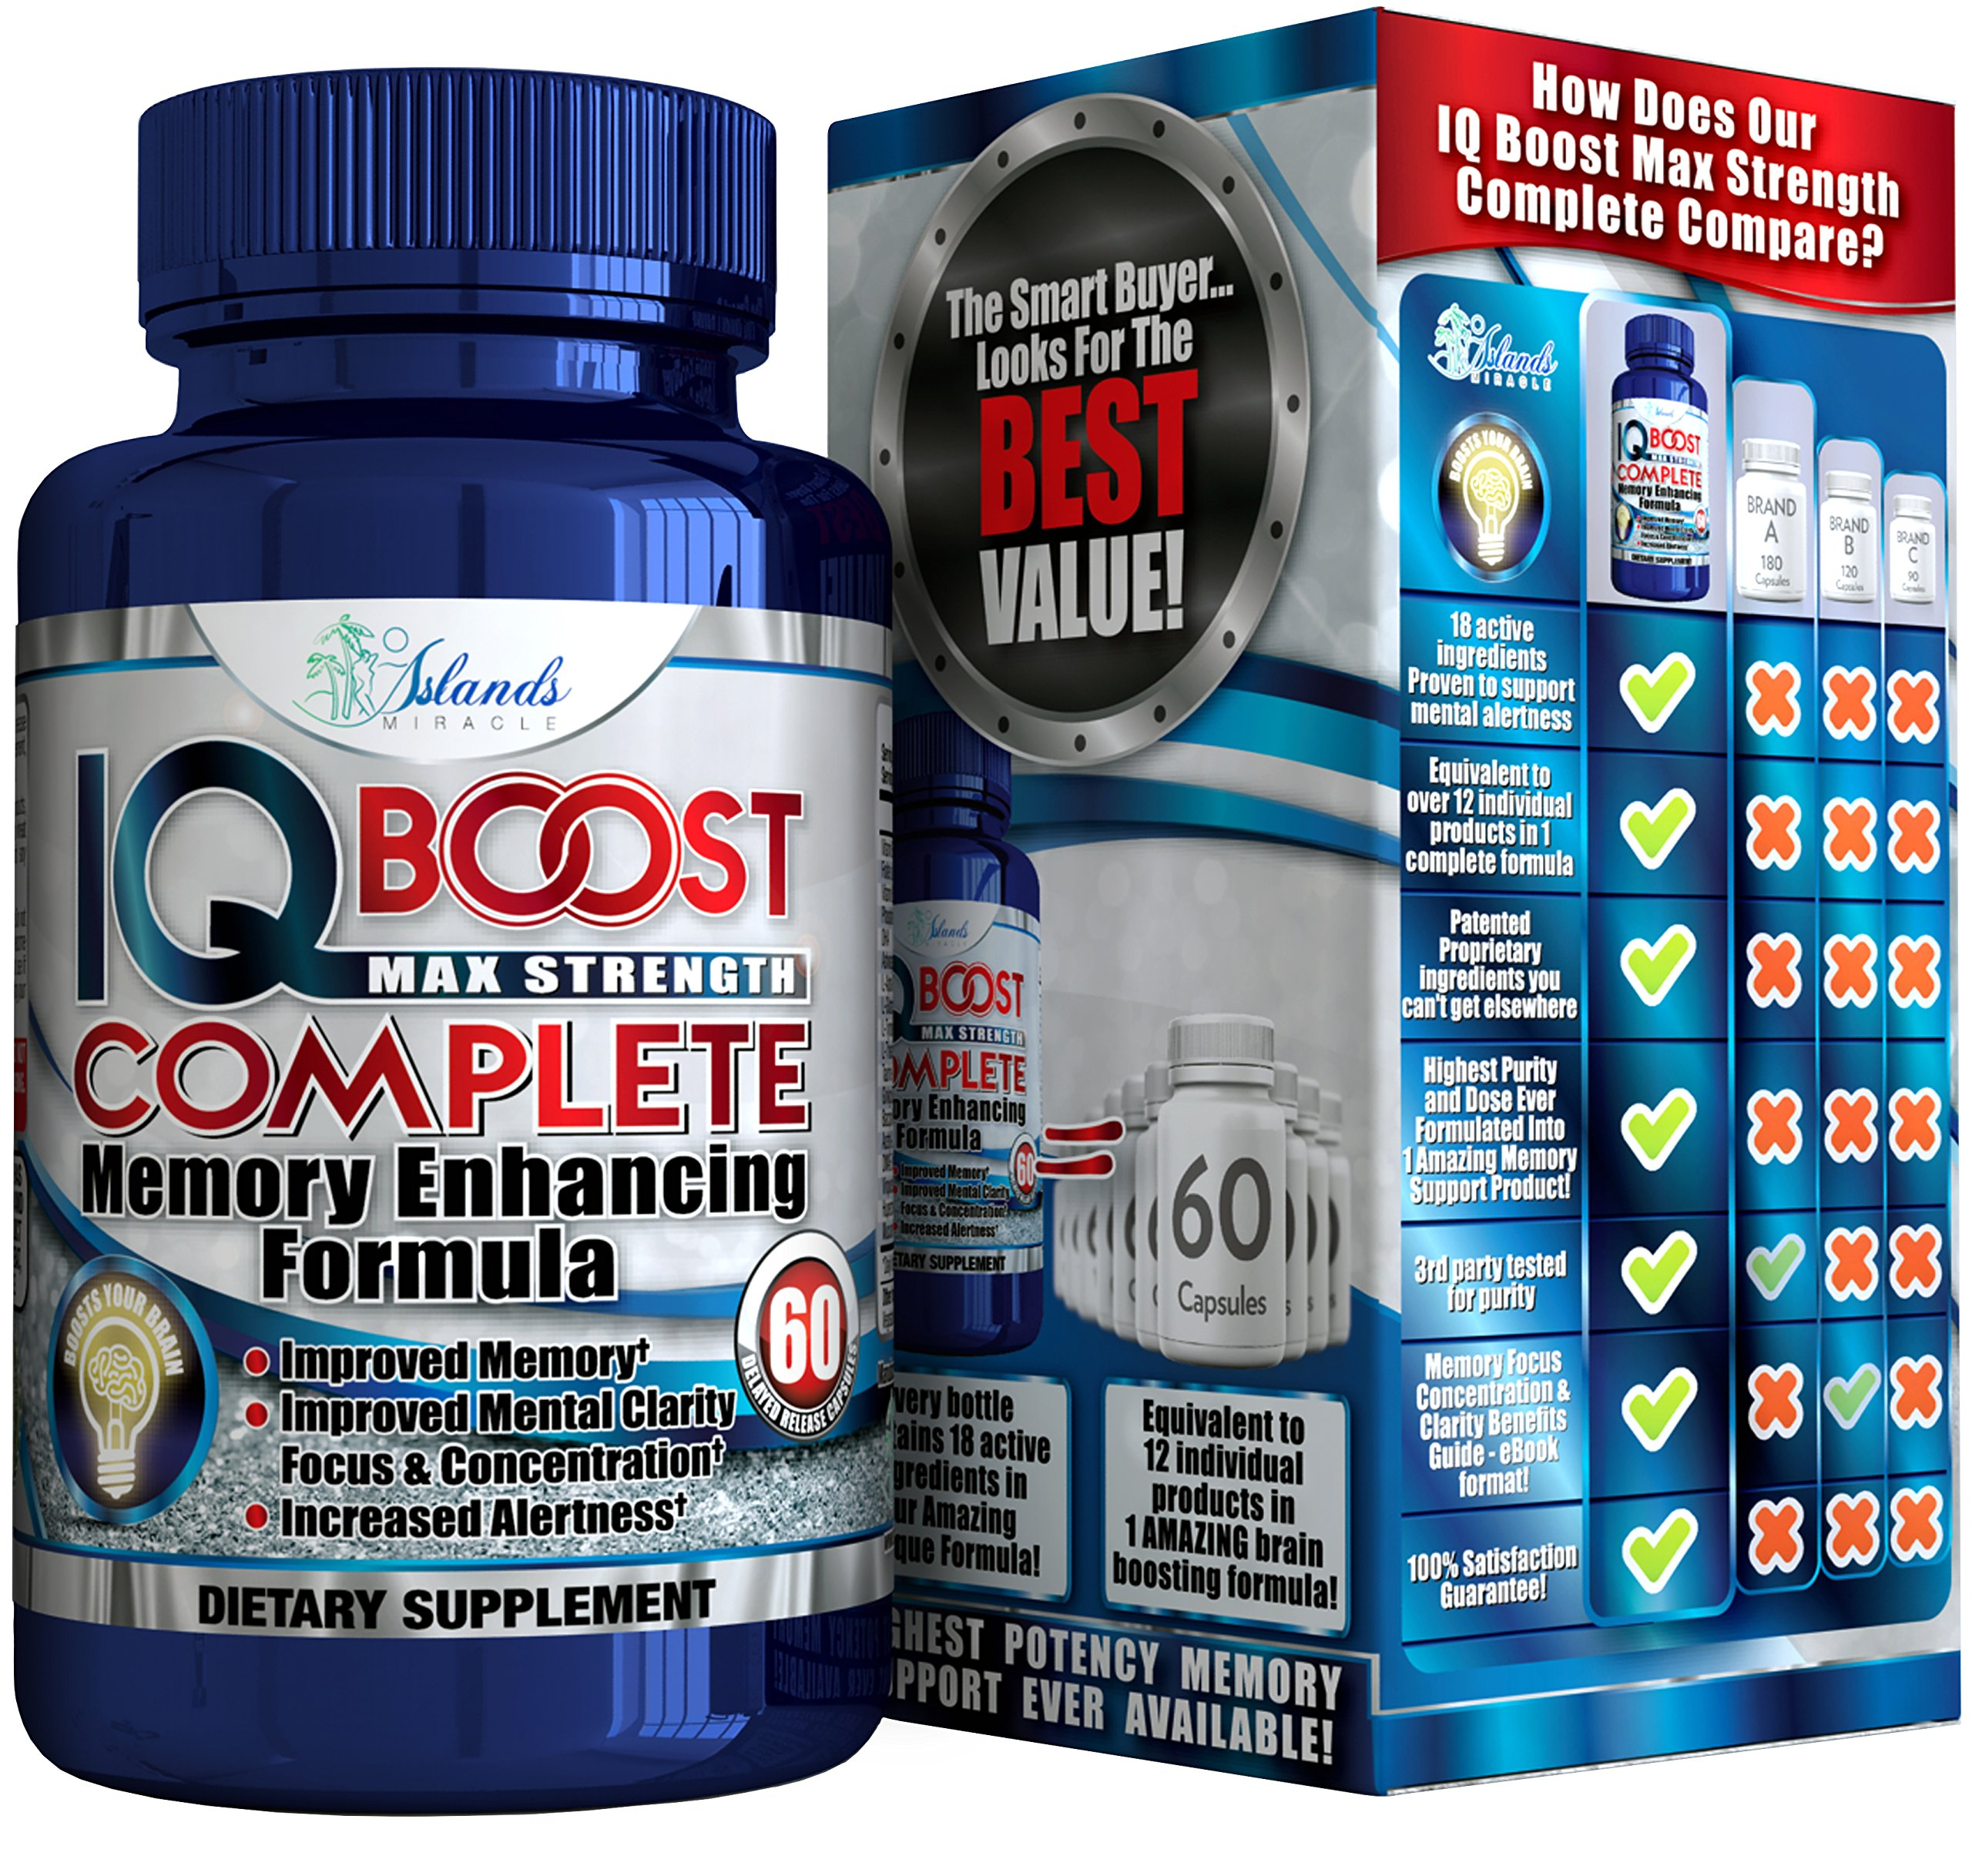 Nootropics Brain Boost with L Theanine Ginkgo biloba Helps Memory, Focus, Energy, Clarity. No Caffeine No Jitters Mind Booster Pills Safe and Natural Alternative Supplements